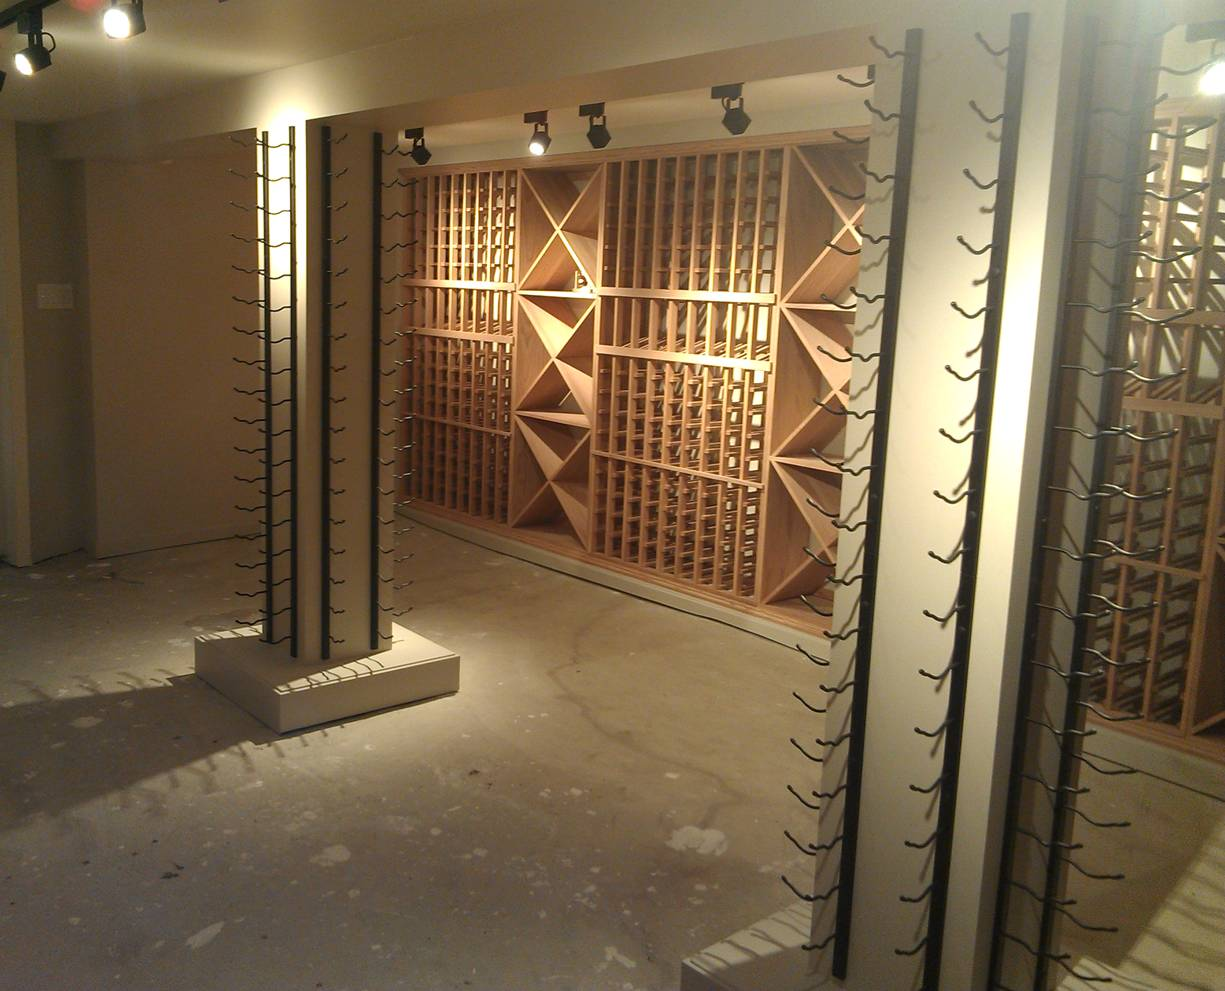 find tag articles large furniture with rack can a cellar racks winsome modern size storage toronto wine diy shelves we